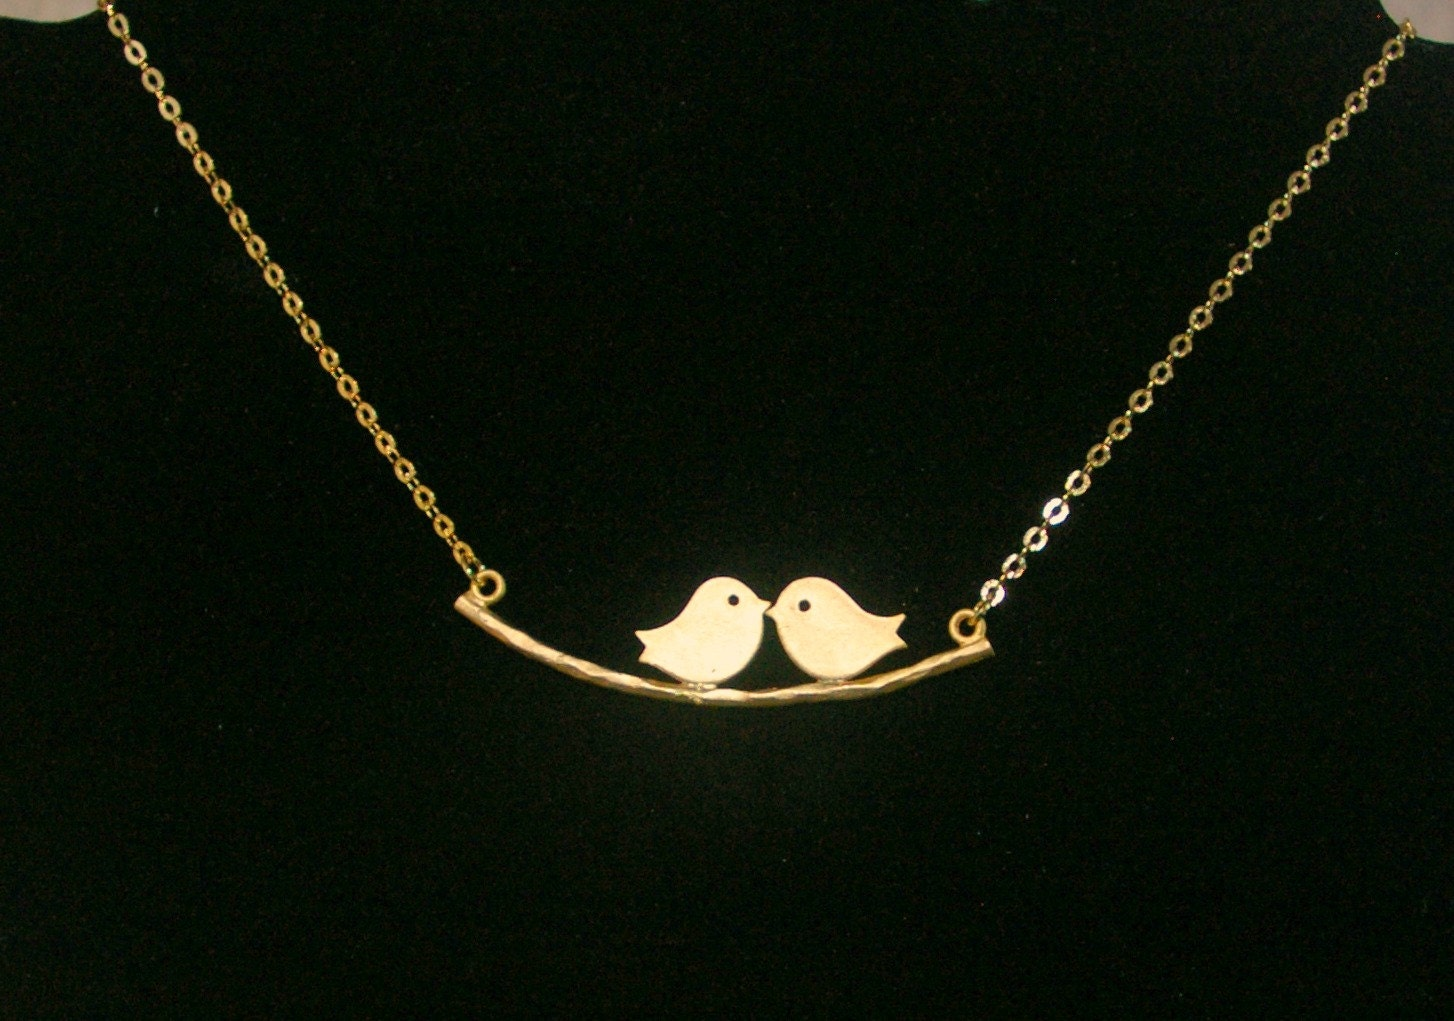 products silver love necklace sterling il bird kissing fullxfull birds handmade fhhq jewelry